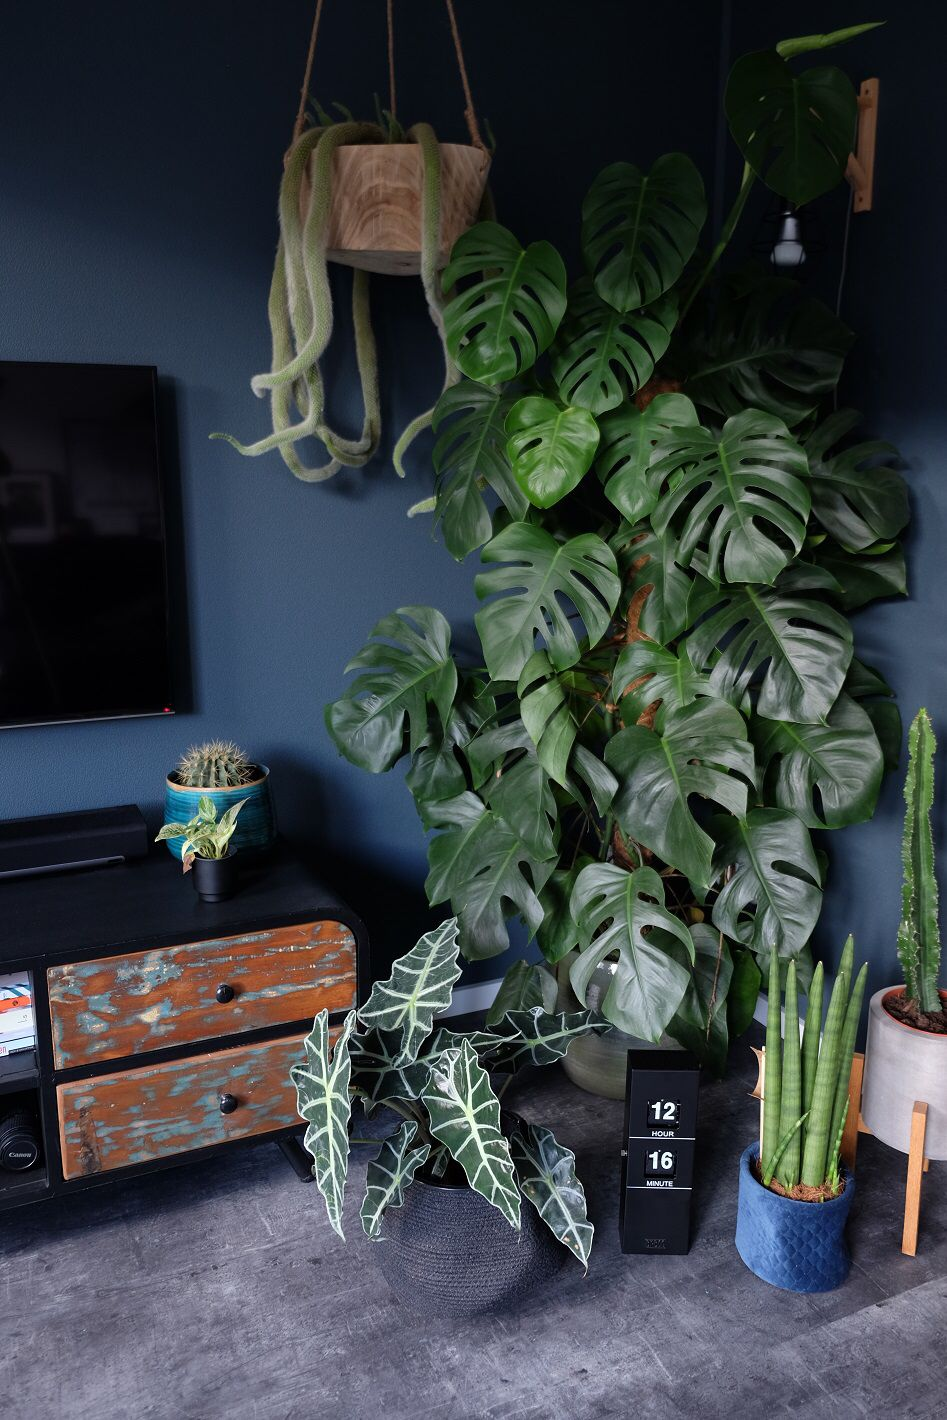 #monstera #planten #urbanjungle #urbanjunglebloggers #monsteradeliciosa #groen #interieur